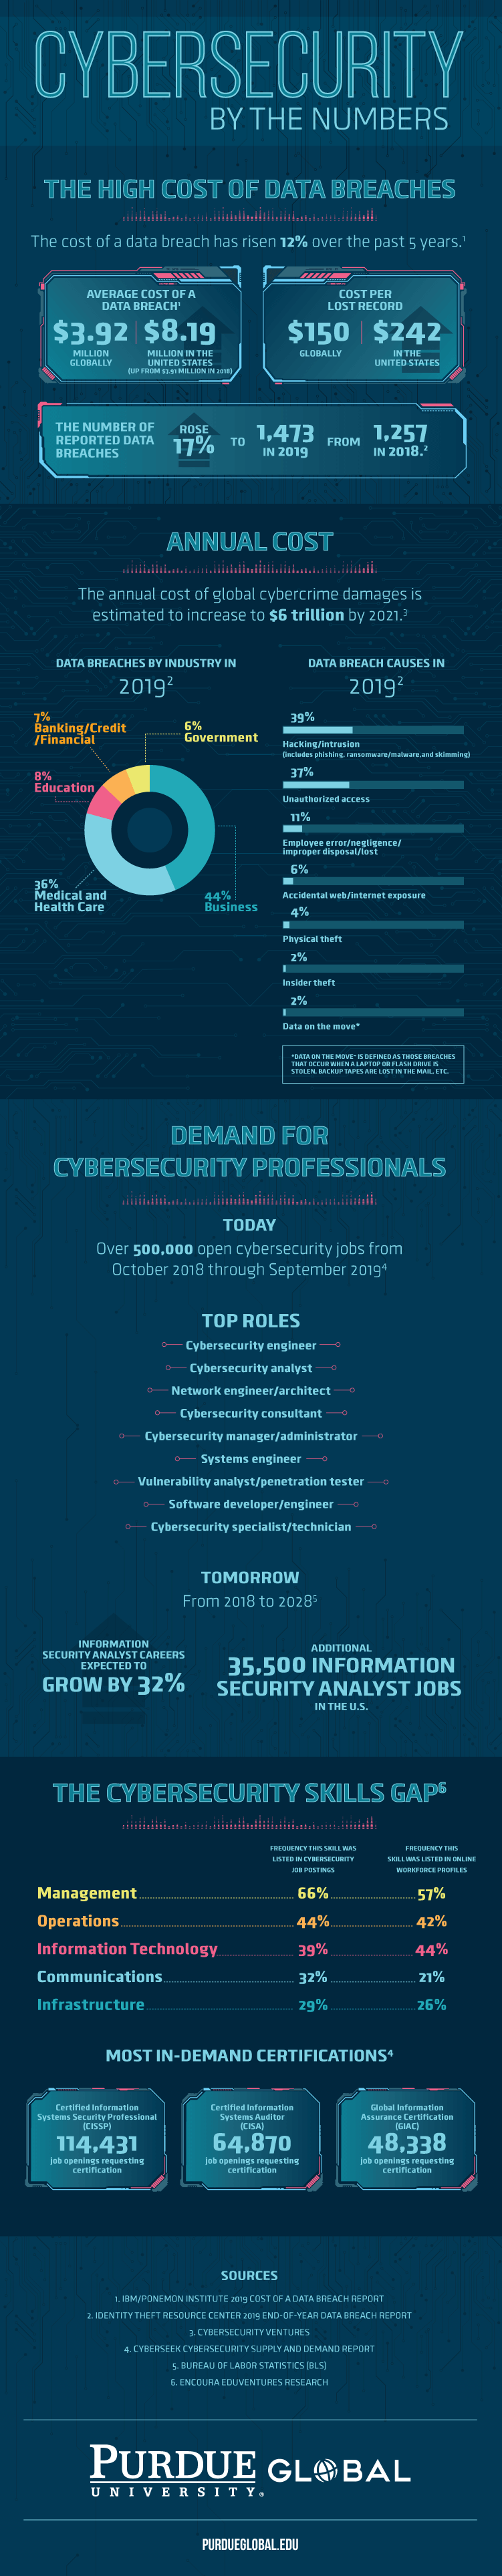 Cybersecurity by the Numbers Infographic